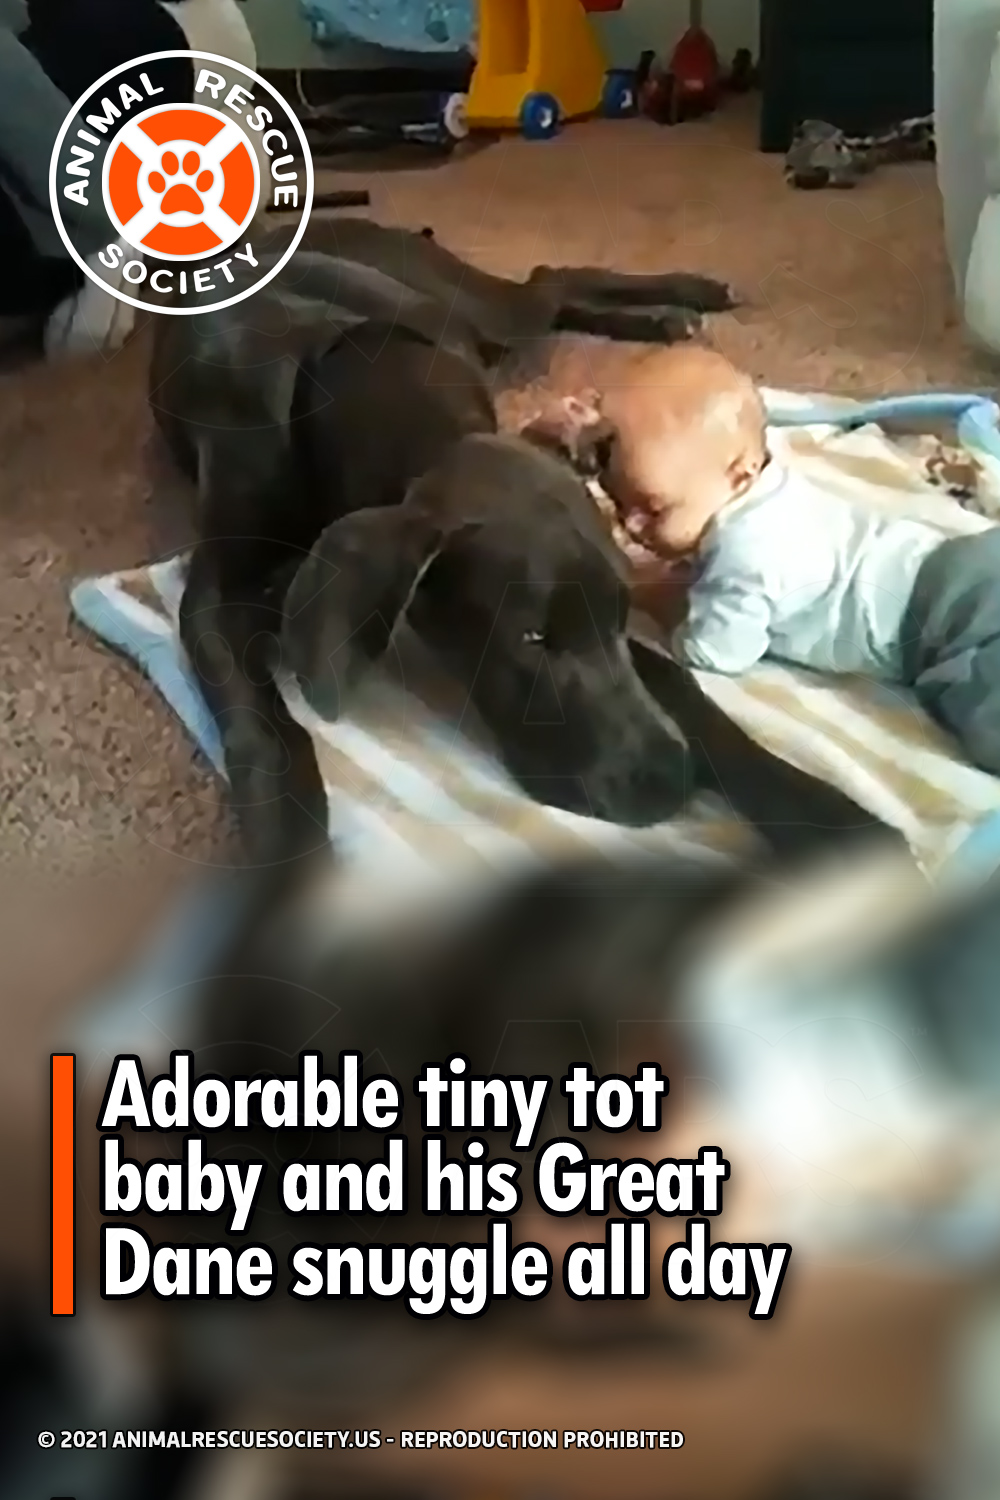 Adorable tiny tot baby and his Great Dane snuggle all day